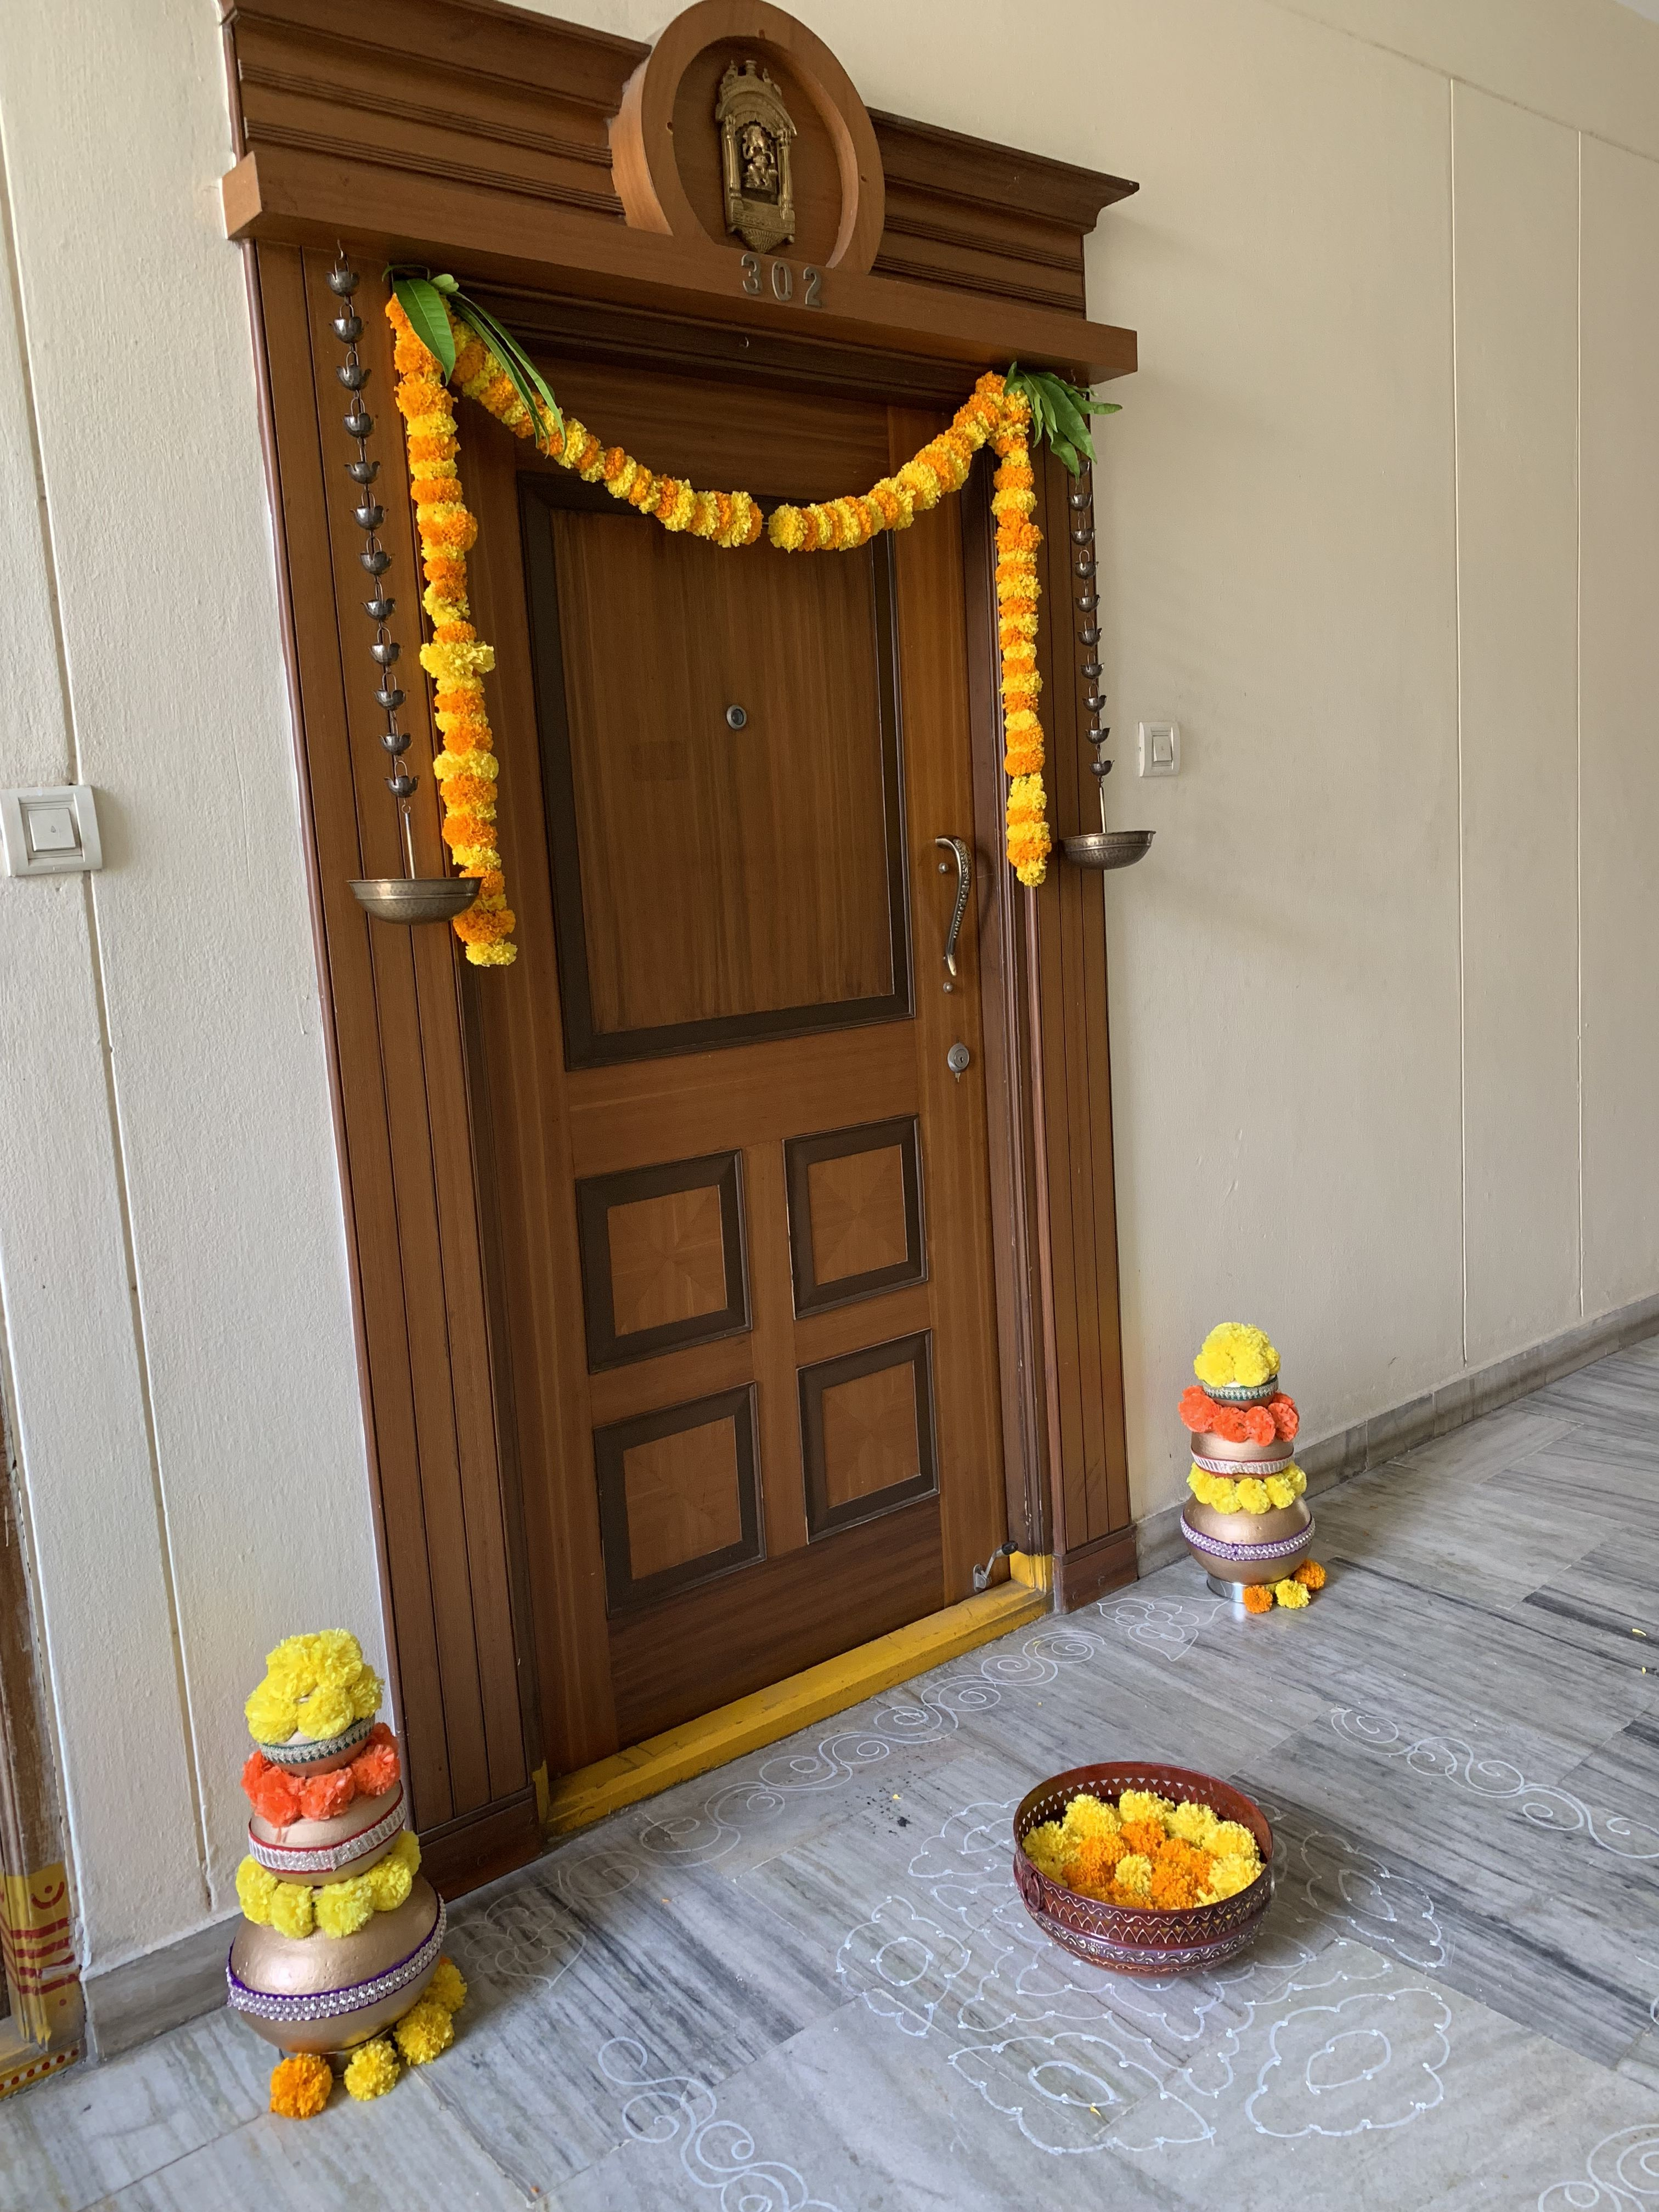 Flower Poofs Love It So Easy To Make With Tissue Paper Diwali Decorations At Home Pooja Room Door Design Door Decorations